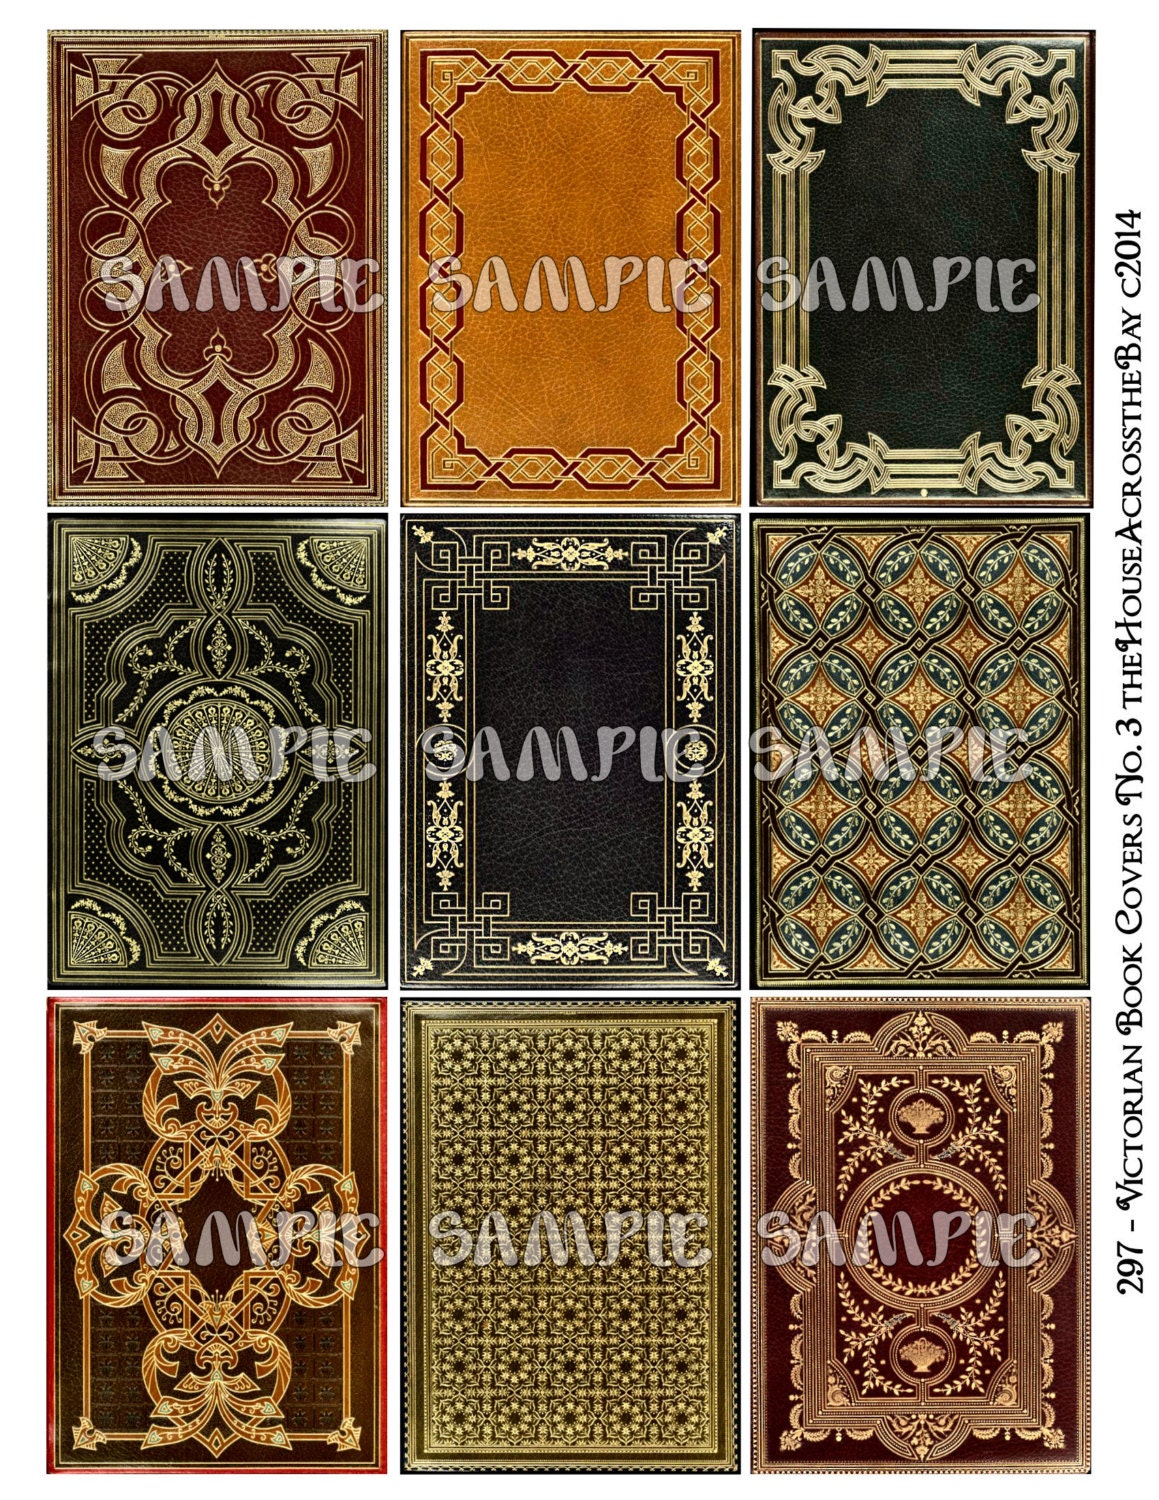 Victorian book covers no 3 atc aceo printable download 2 5 for Jewelry books free download